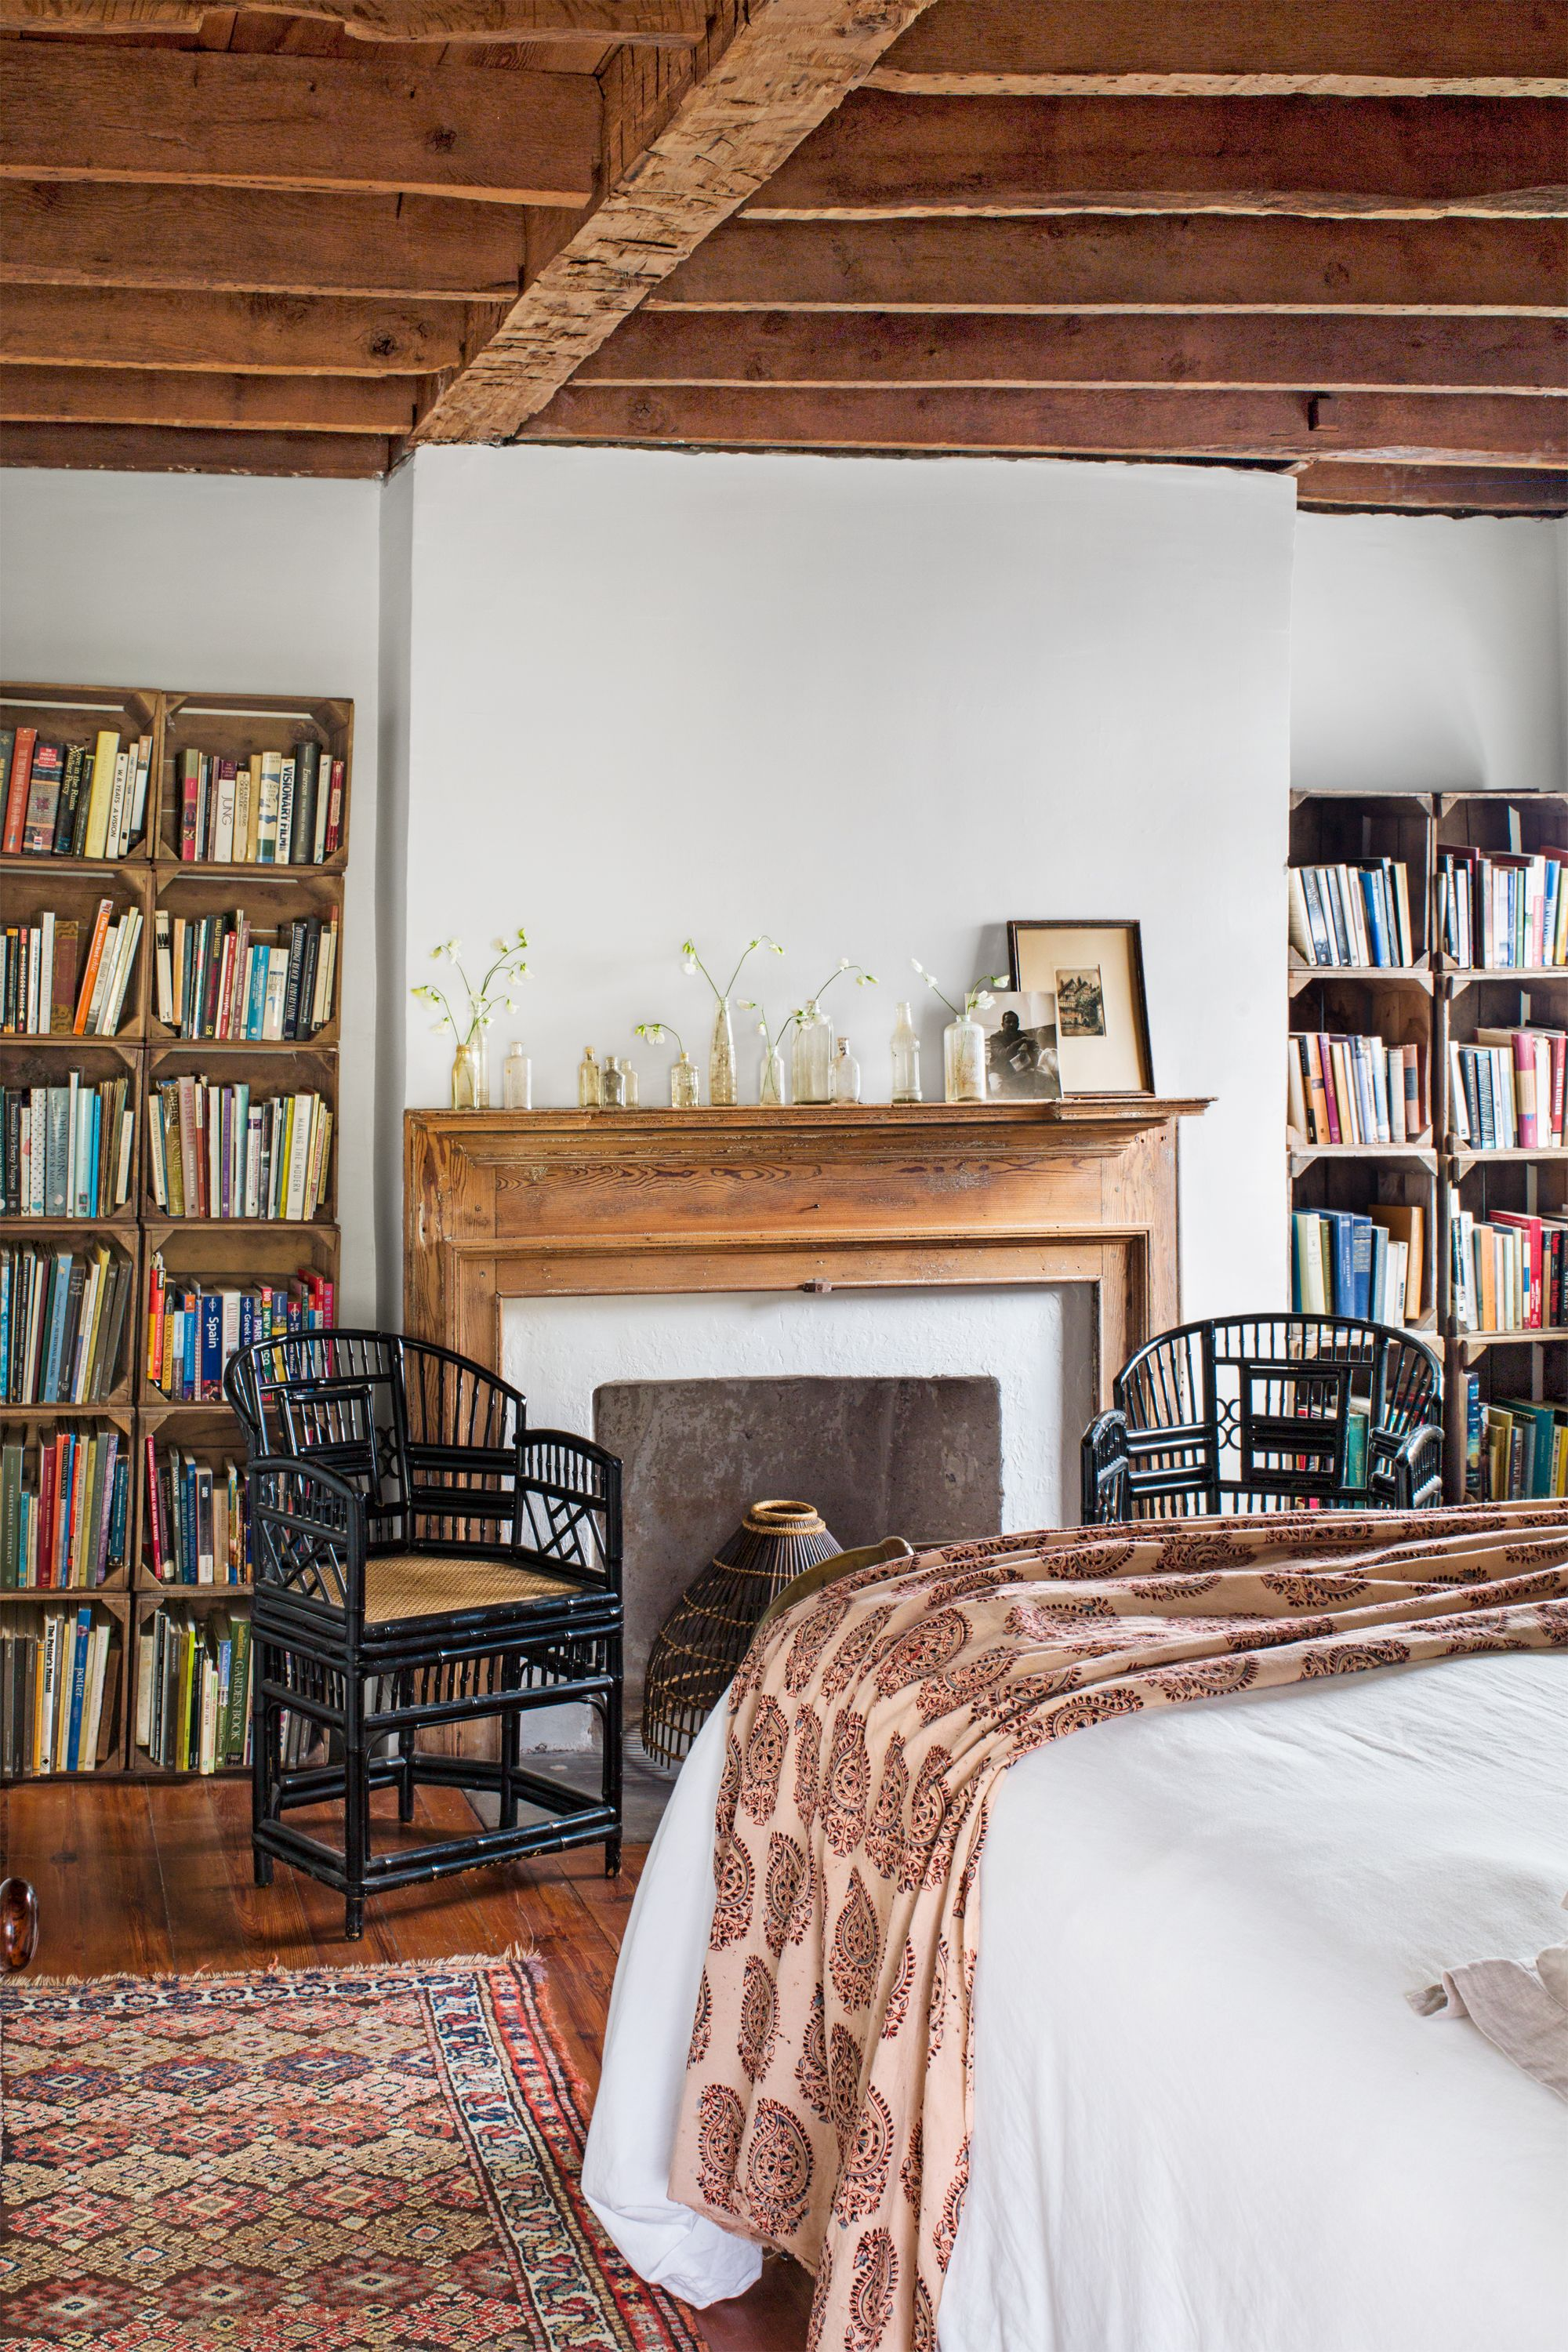 30+ Best Farmhouse Style Ideas - Rustic Home Decor Decorating Shelves In Victorian Bedroom on corner shelf for bedroom, corner wall shelves modern bedroom, built in shelves in master bedroom, bathroom shelves in bedroom, clothing shelves in bedroom, built in bookshelves in bedroom, decorating shelves for fall, display shelves in bedroom, ideas to decorate your bedroom, bay window in bedroom, building shelves in bedroom, coffee bar in bedroom, shelf for girls bedroom, metal shelves in bedroom, storage shelves in bedroom, unique bookshelves for teenagers bedroom, shelf decor bedroom, decorative shelf bedroom,